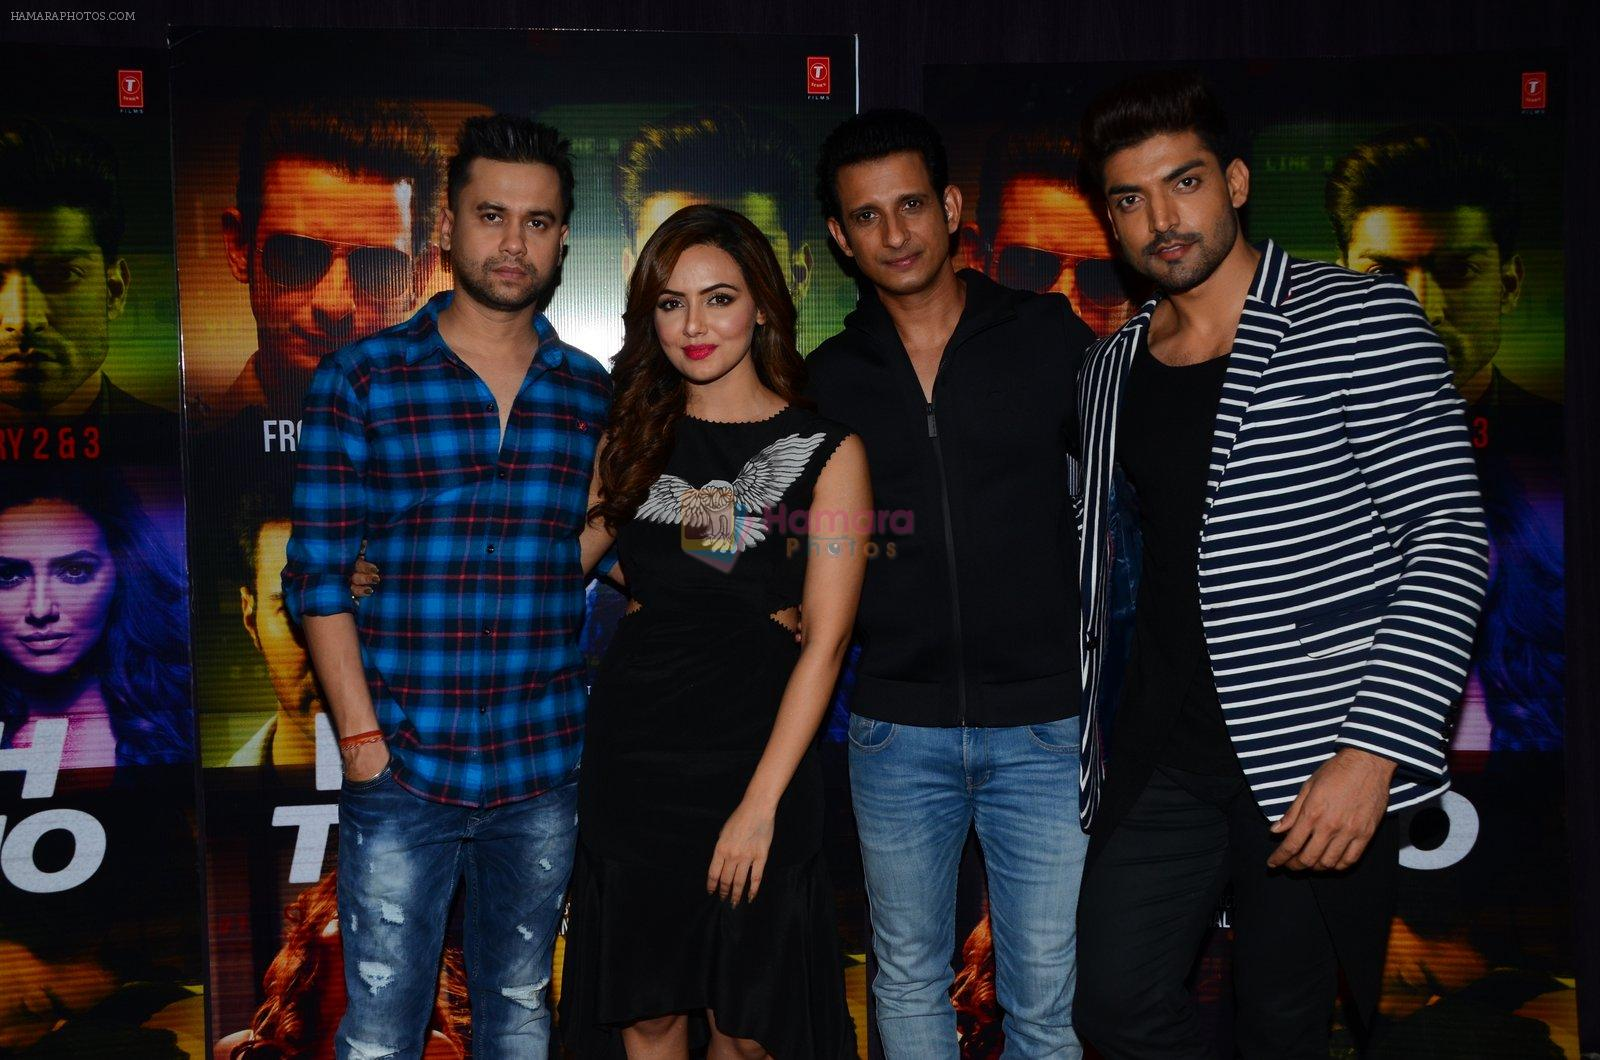 Sana Khan, Gurmeet Choudhary, Sharman Joshi, Vishal Pandya at Wajah Tum Ho film promotions in Mumbai on 22nd Nov 2016